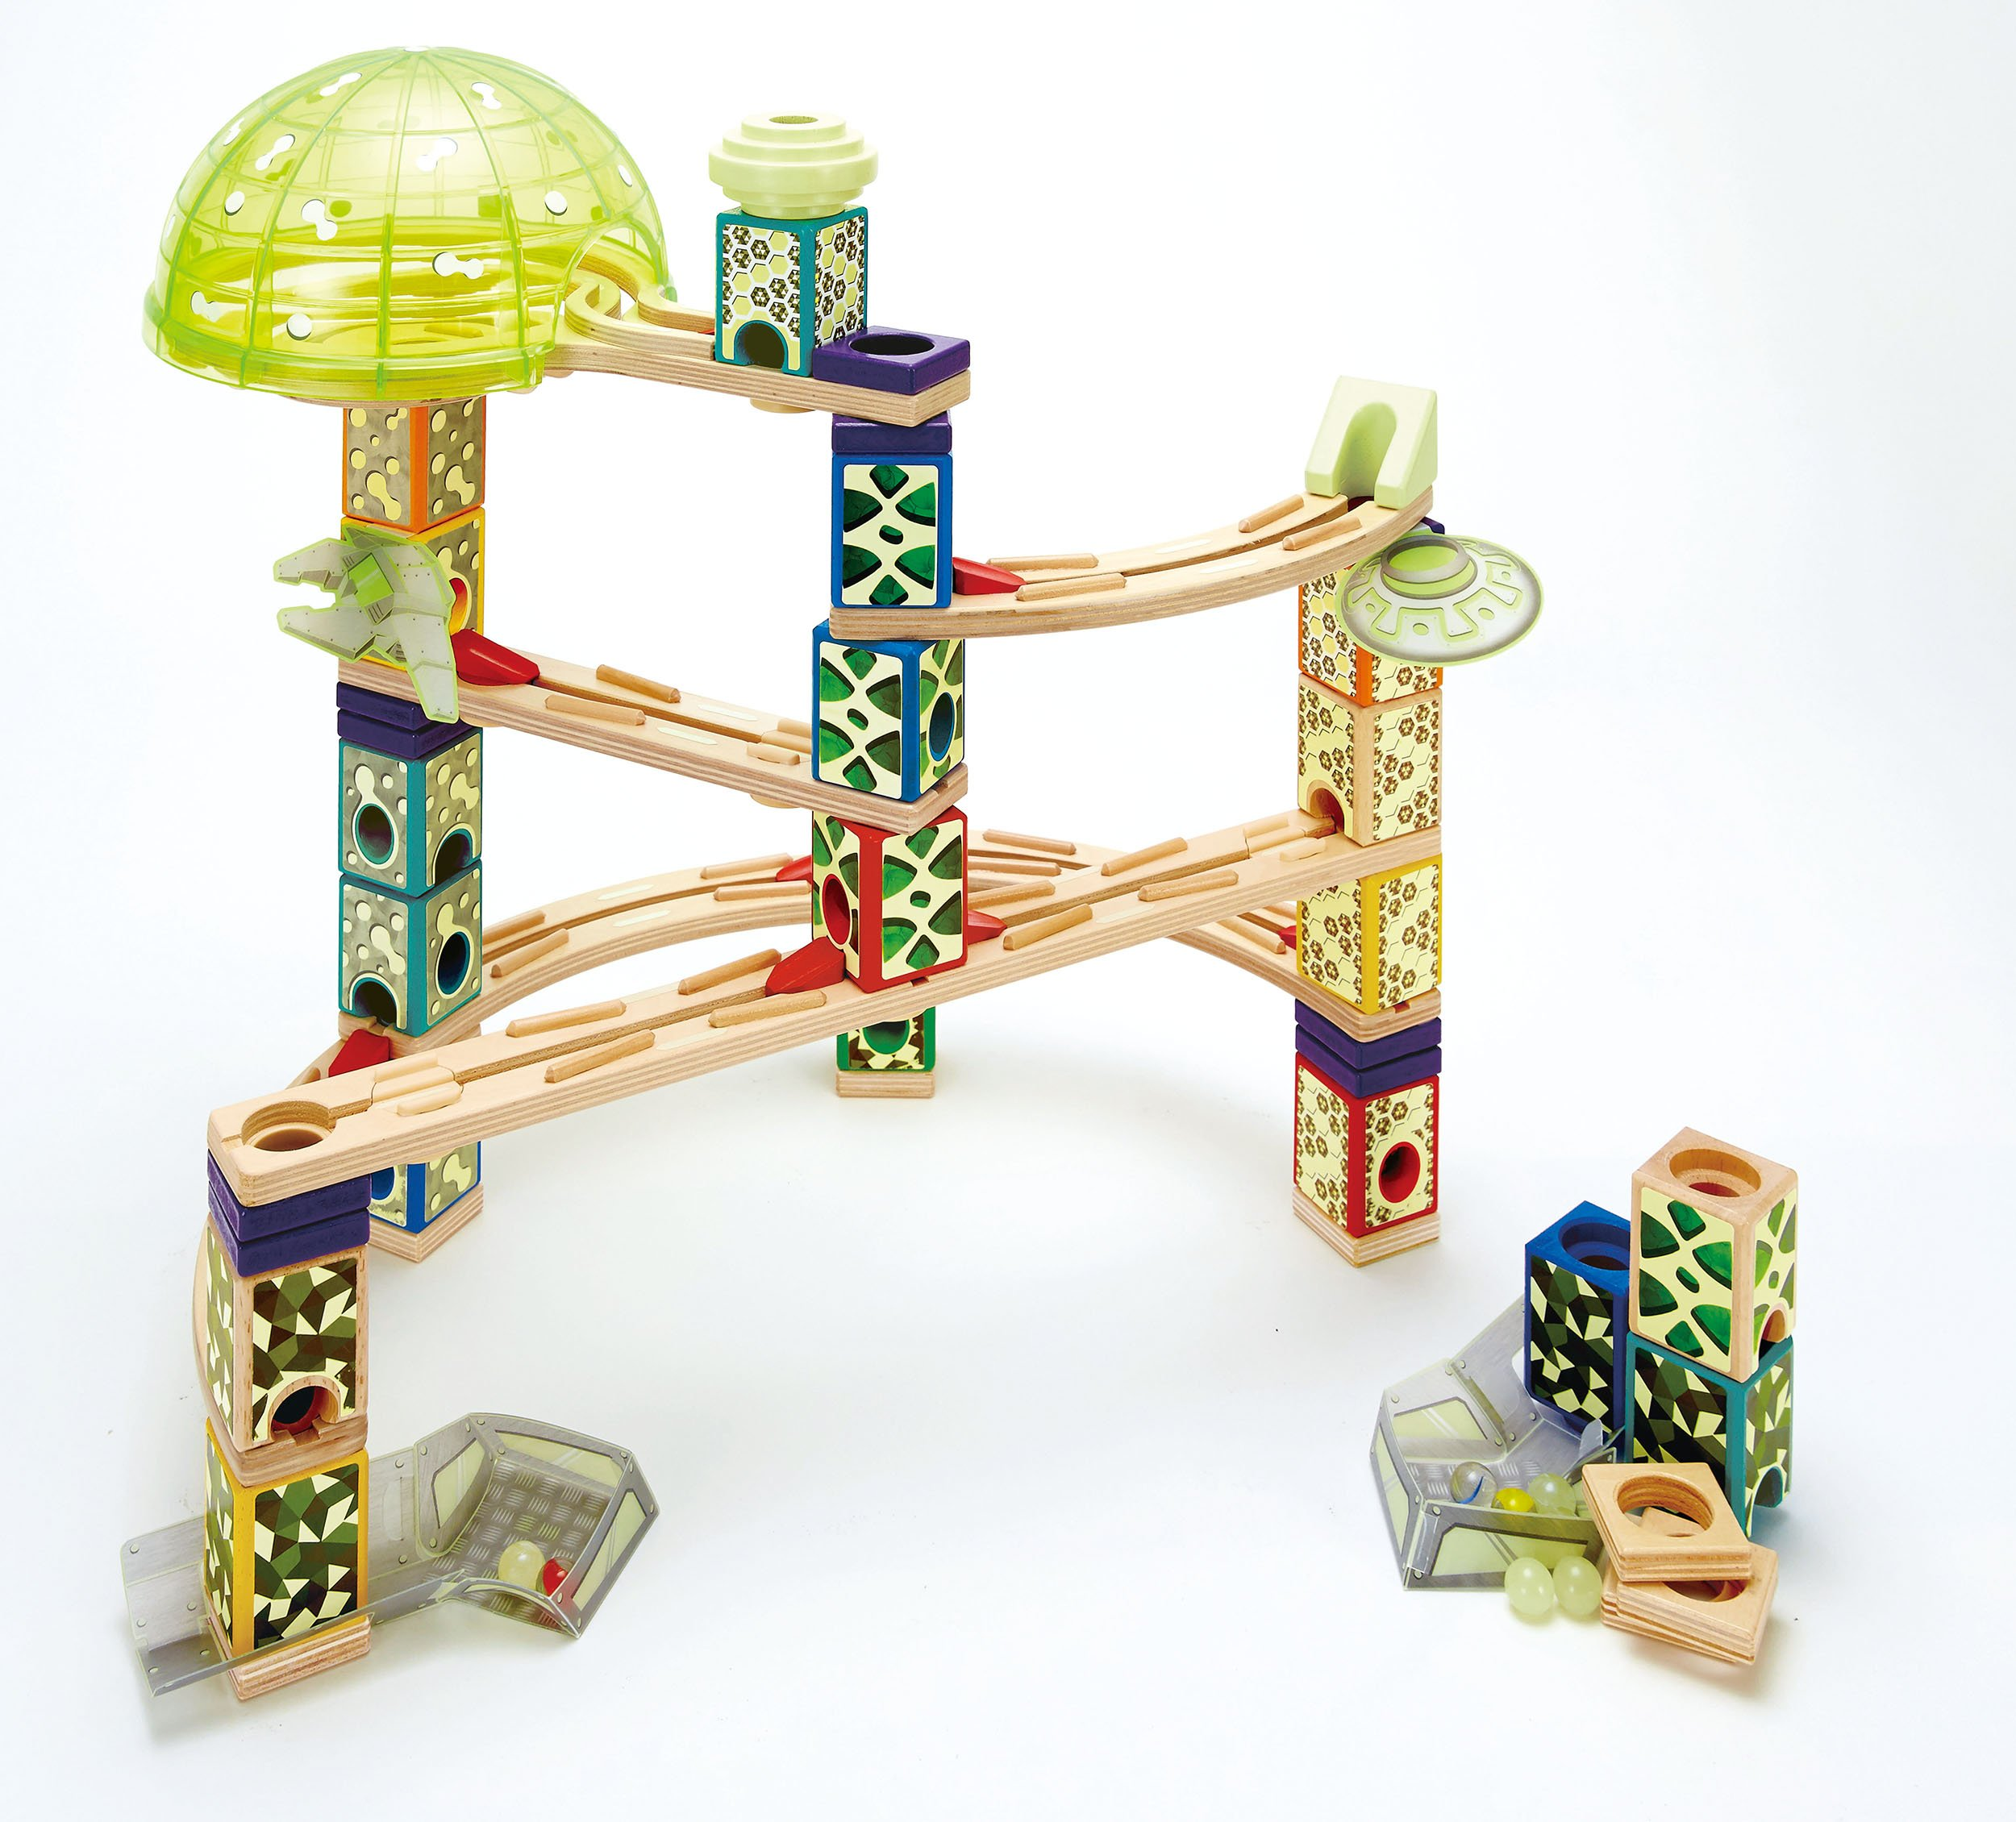 Award Winning Hape Quadrilla Wooden Marble Run Construction - Space City